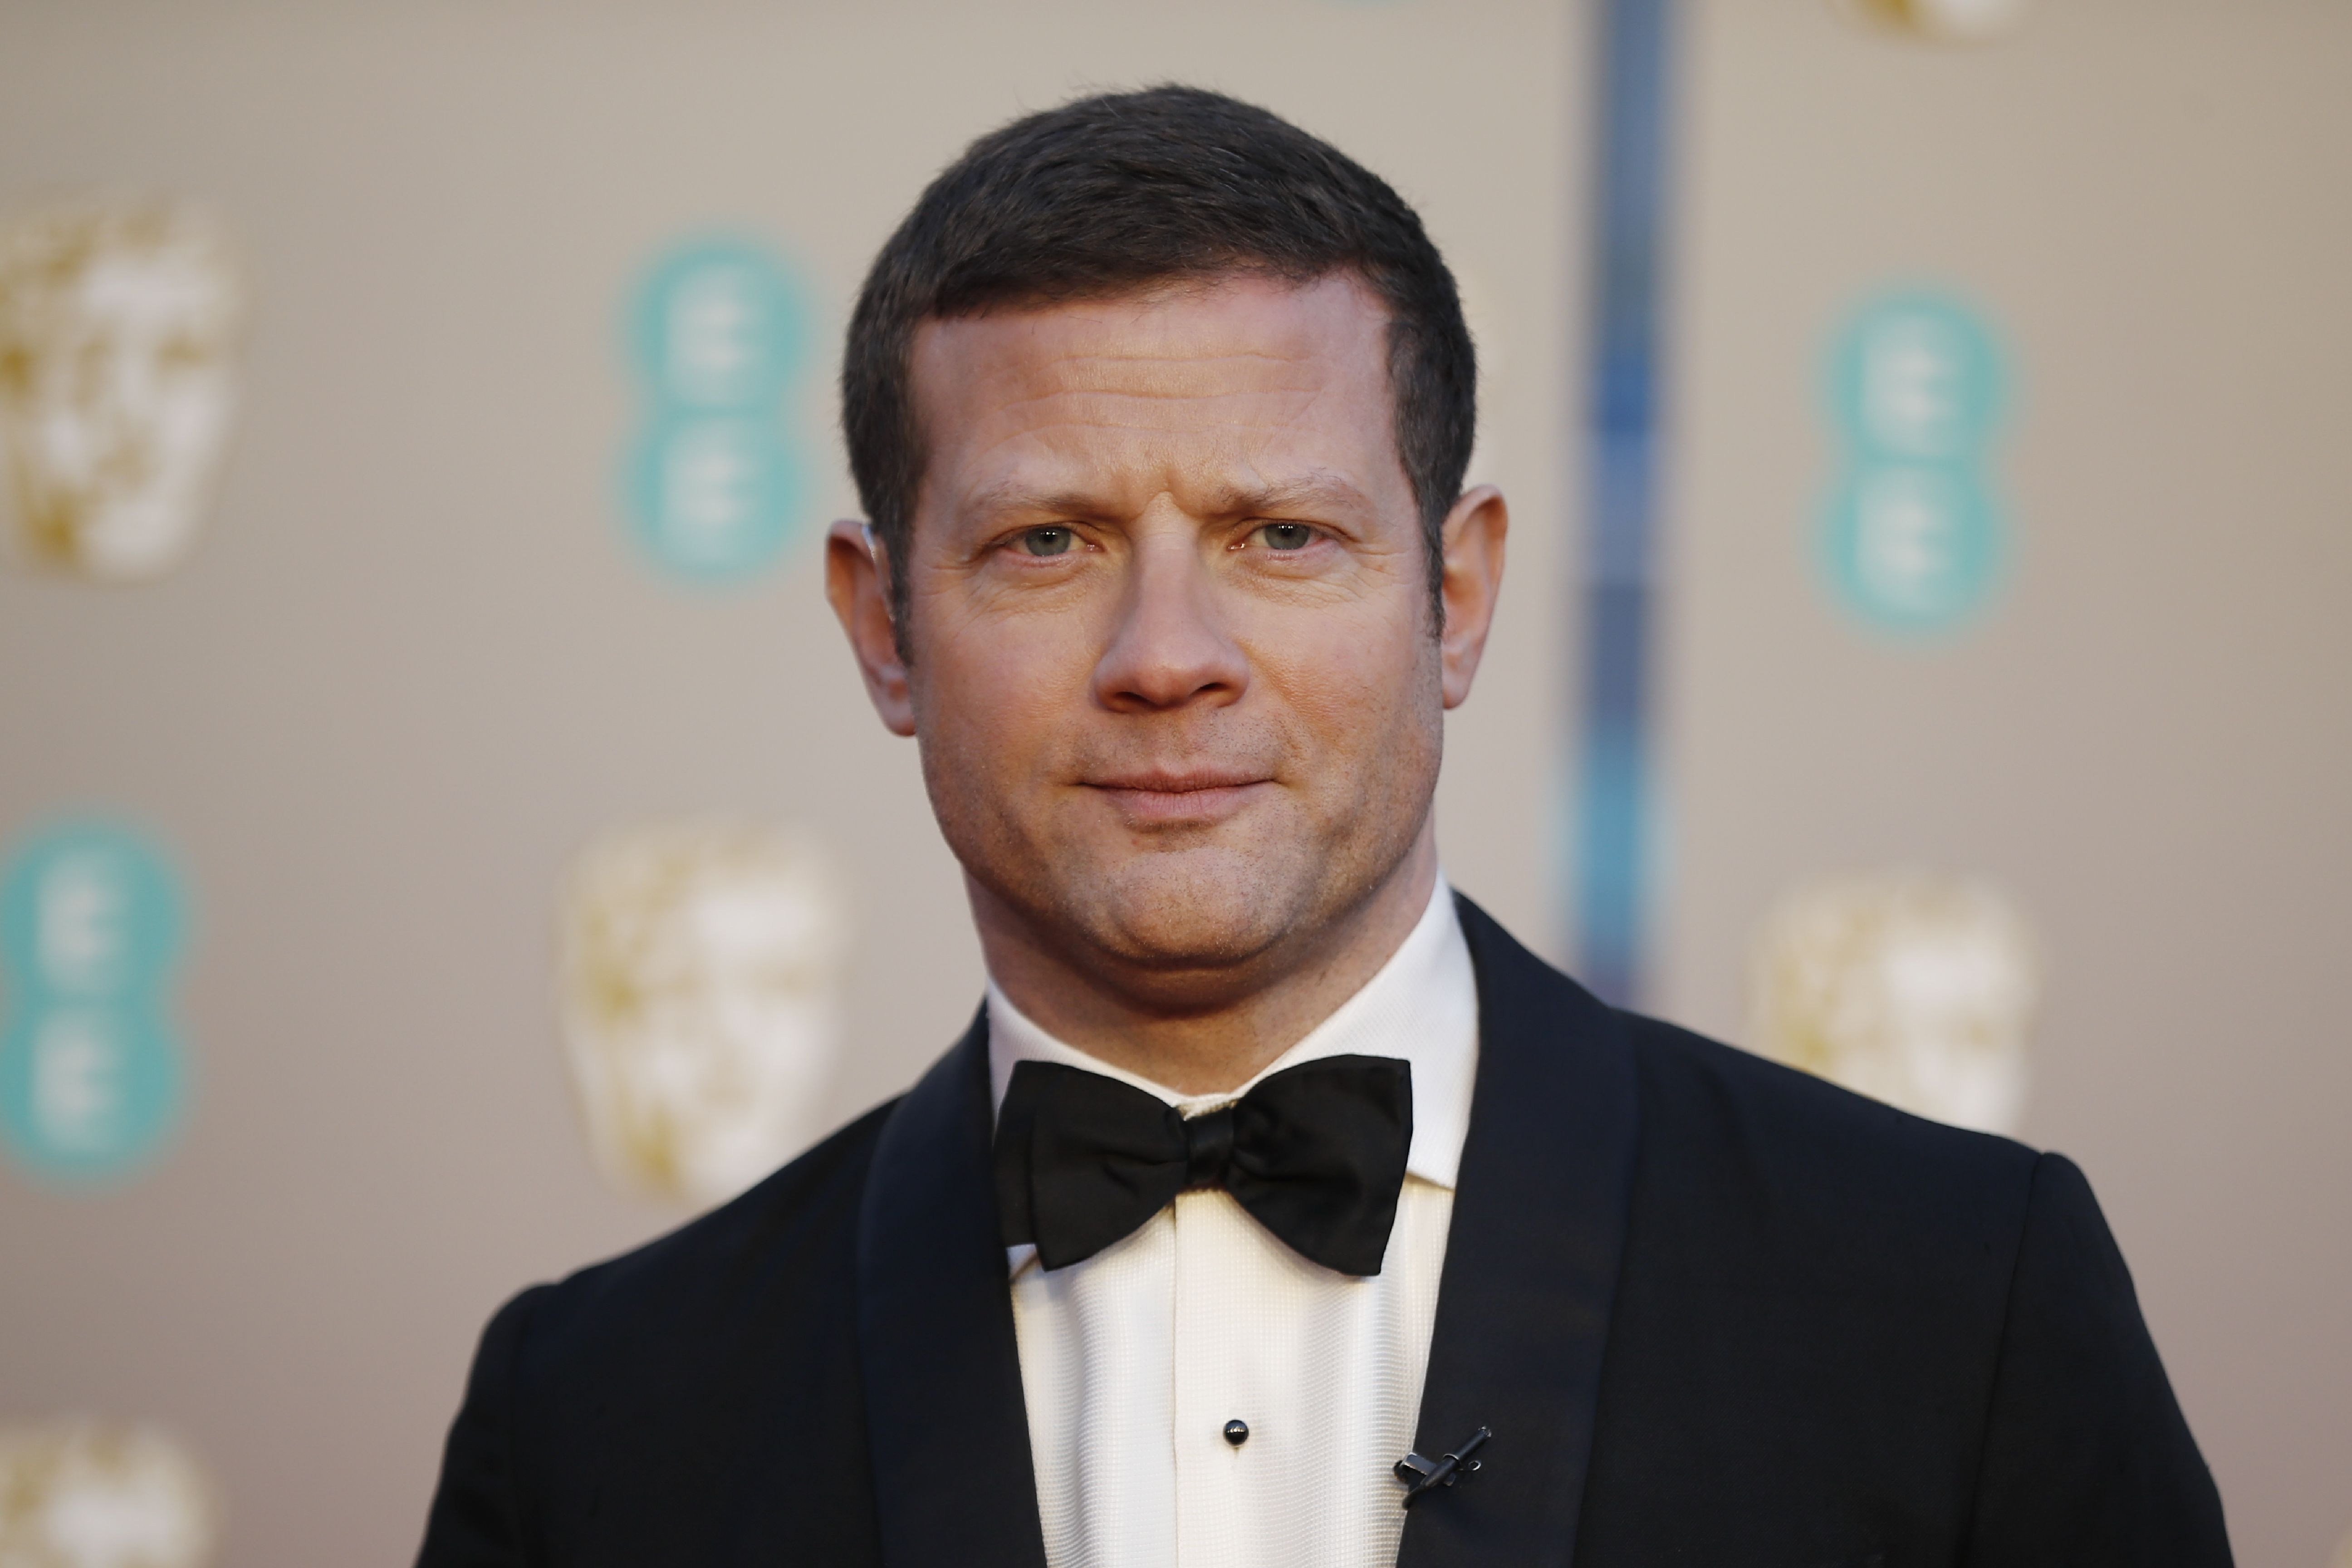 Dermot O'Leary on new podcast: 'I'm not doing a Piers Morgan, that's not my style'